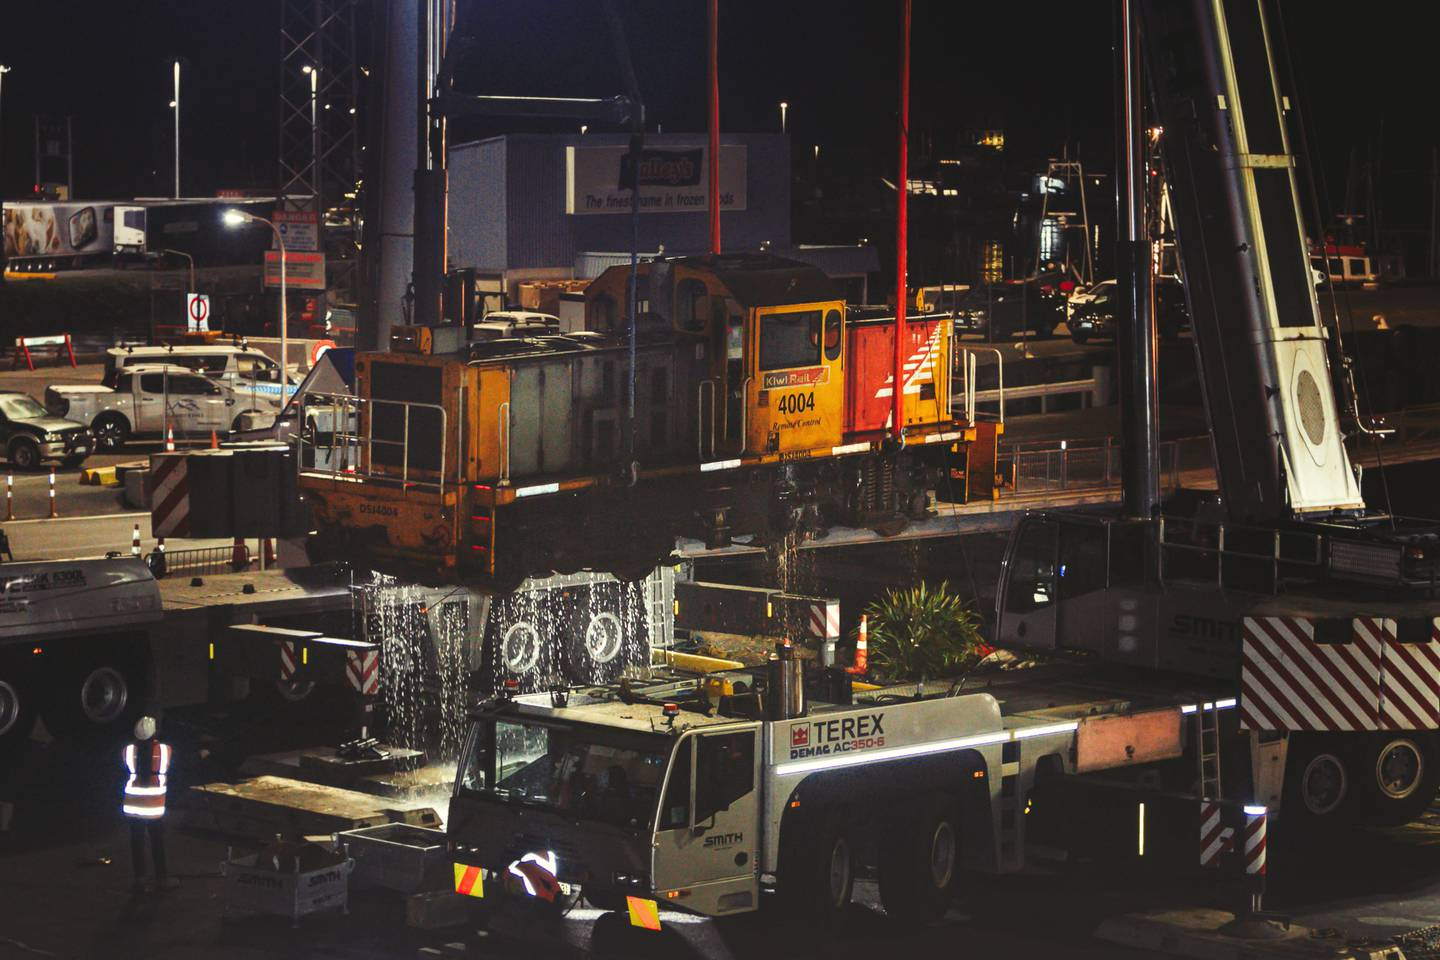 A KiwiRail shunt locomotive, which fell into Picton Harbour last week, was lifted out of the water by two cranes on Friday night. Photo / Jim Tannock